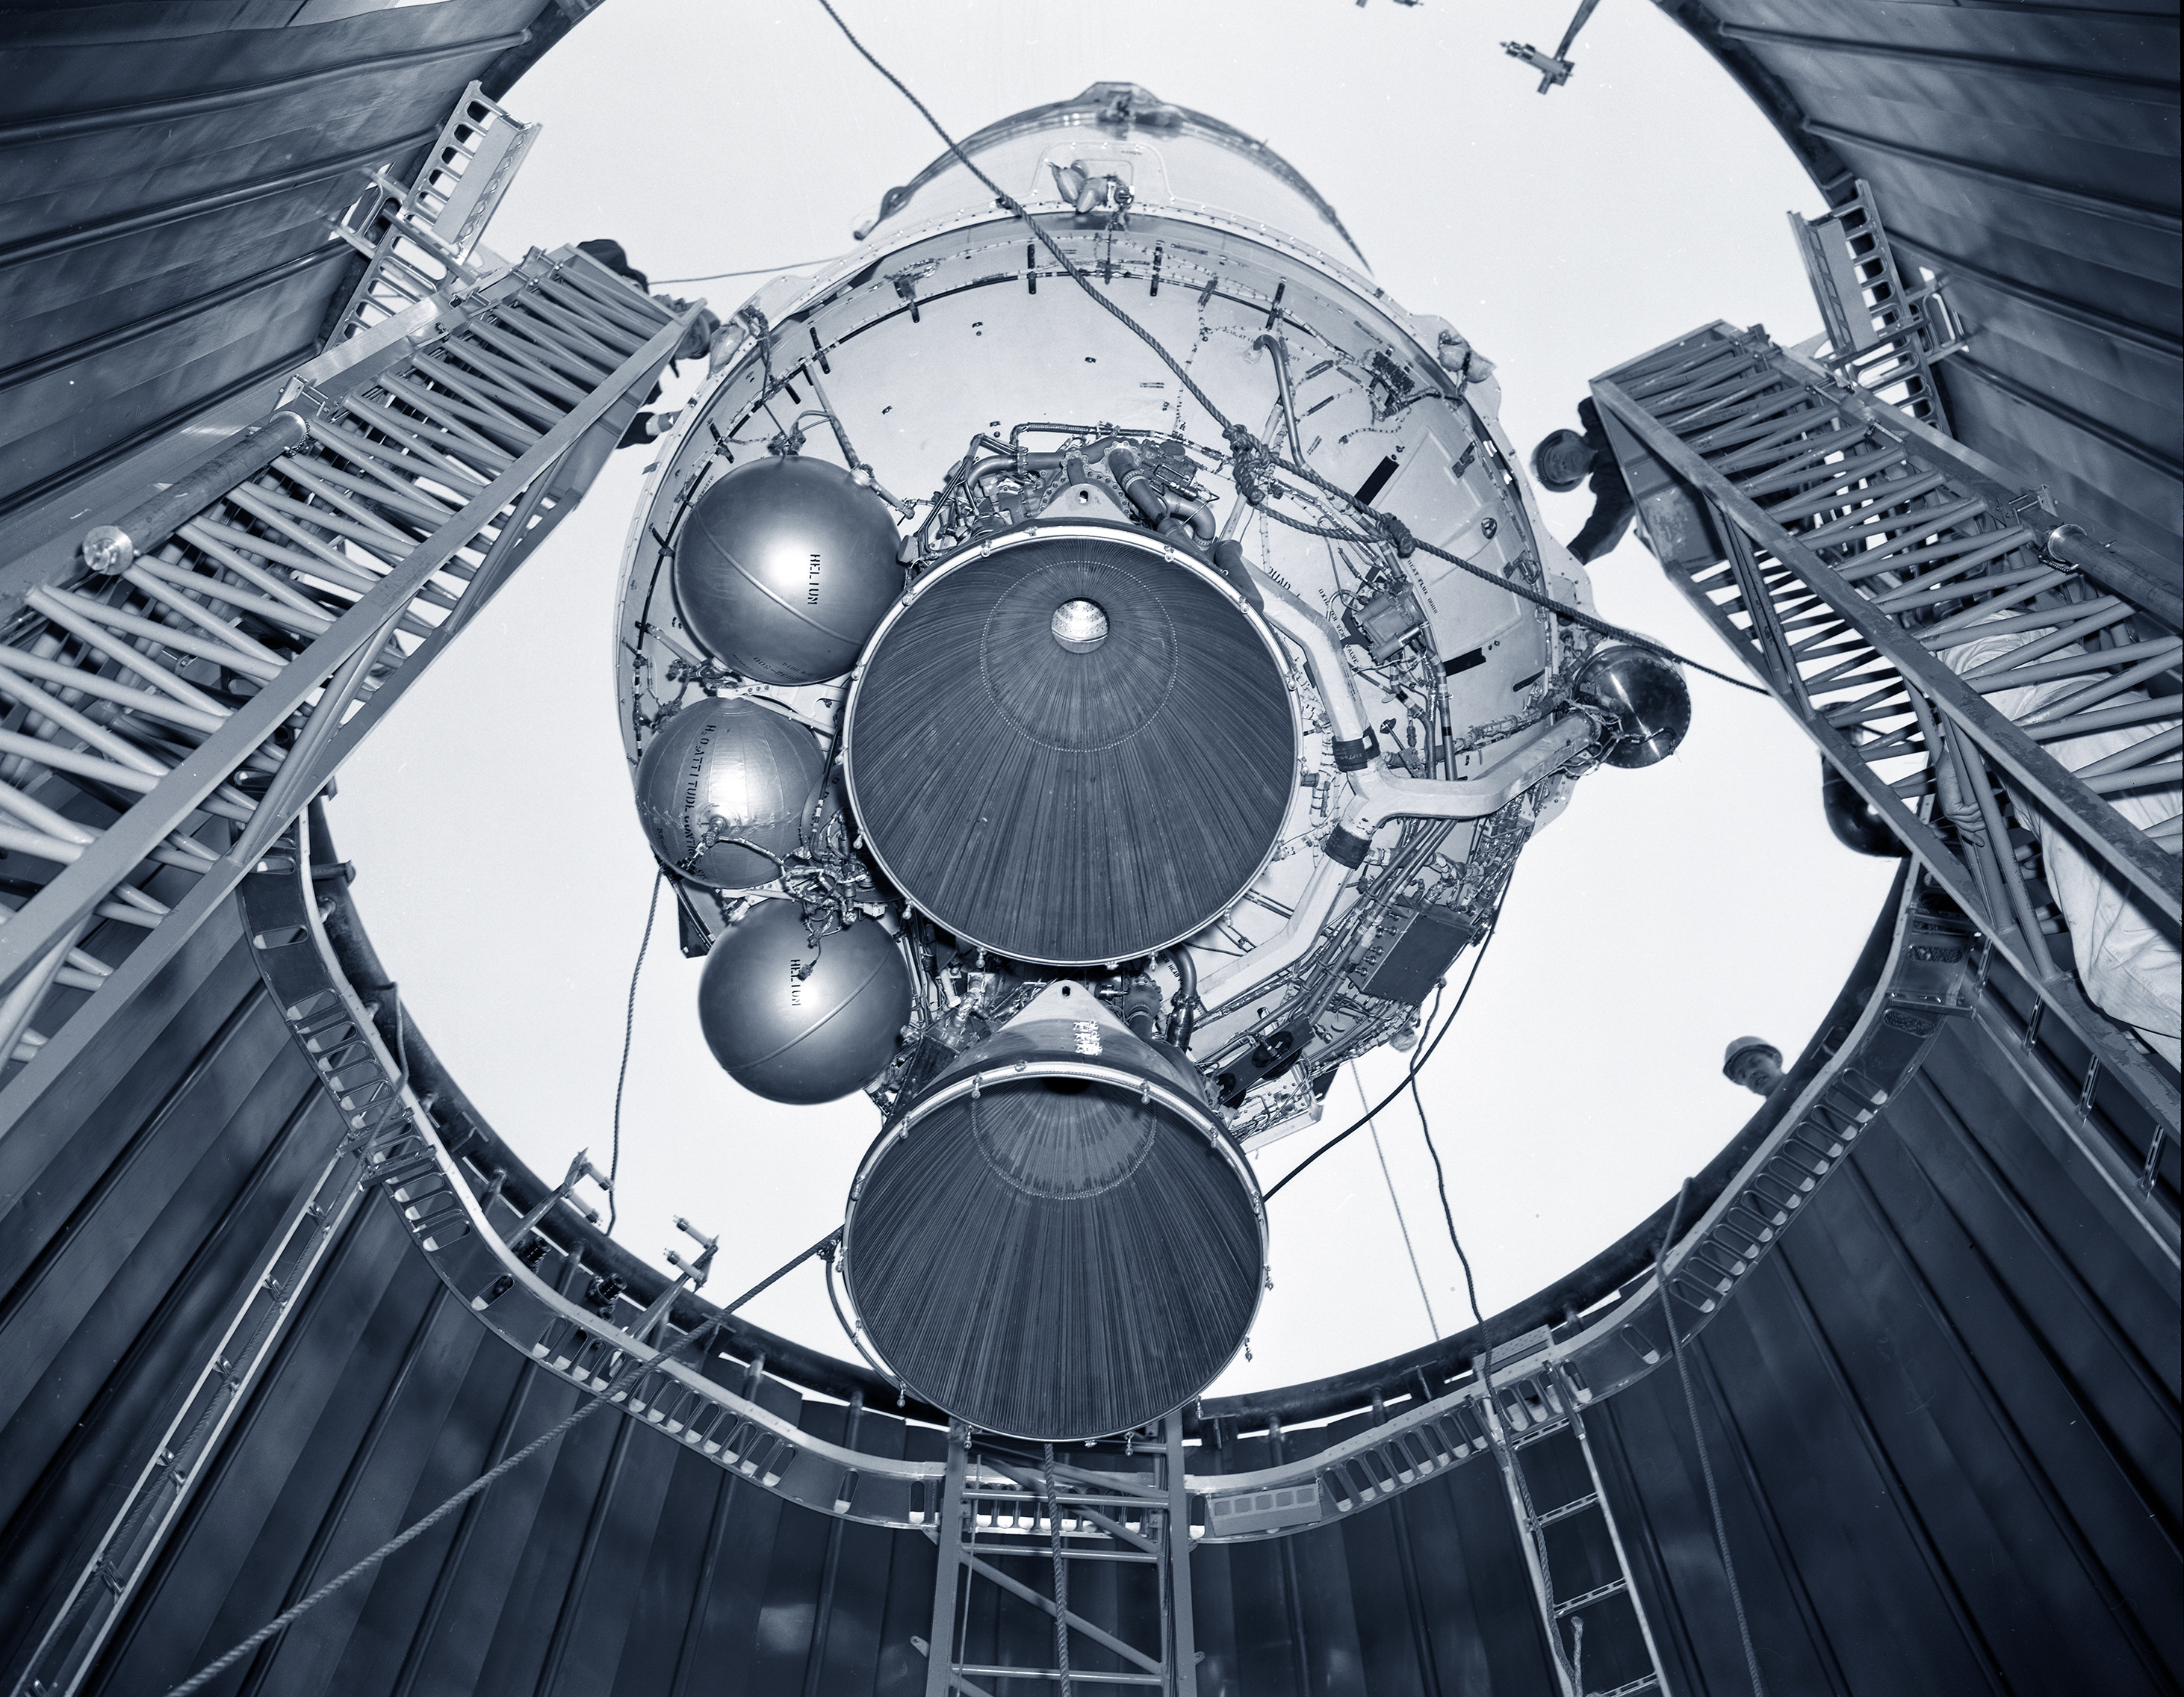 View from below as Centaur is lowered into chamber.